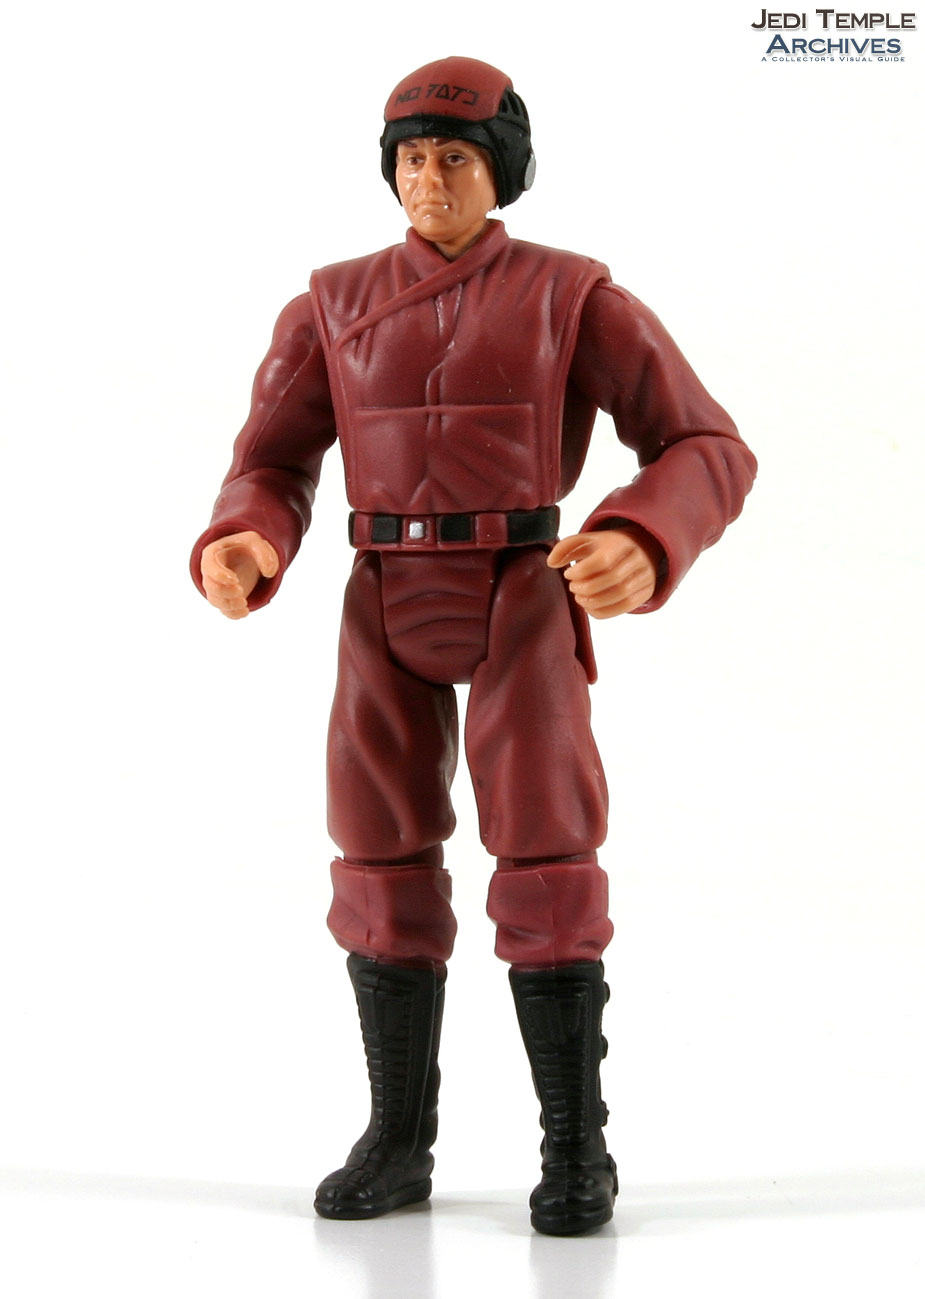 Naboo Soldier (Royal Nabook Army) -